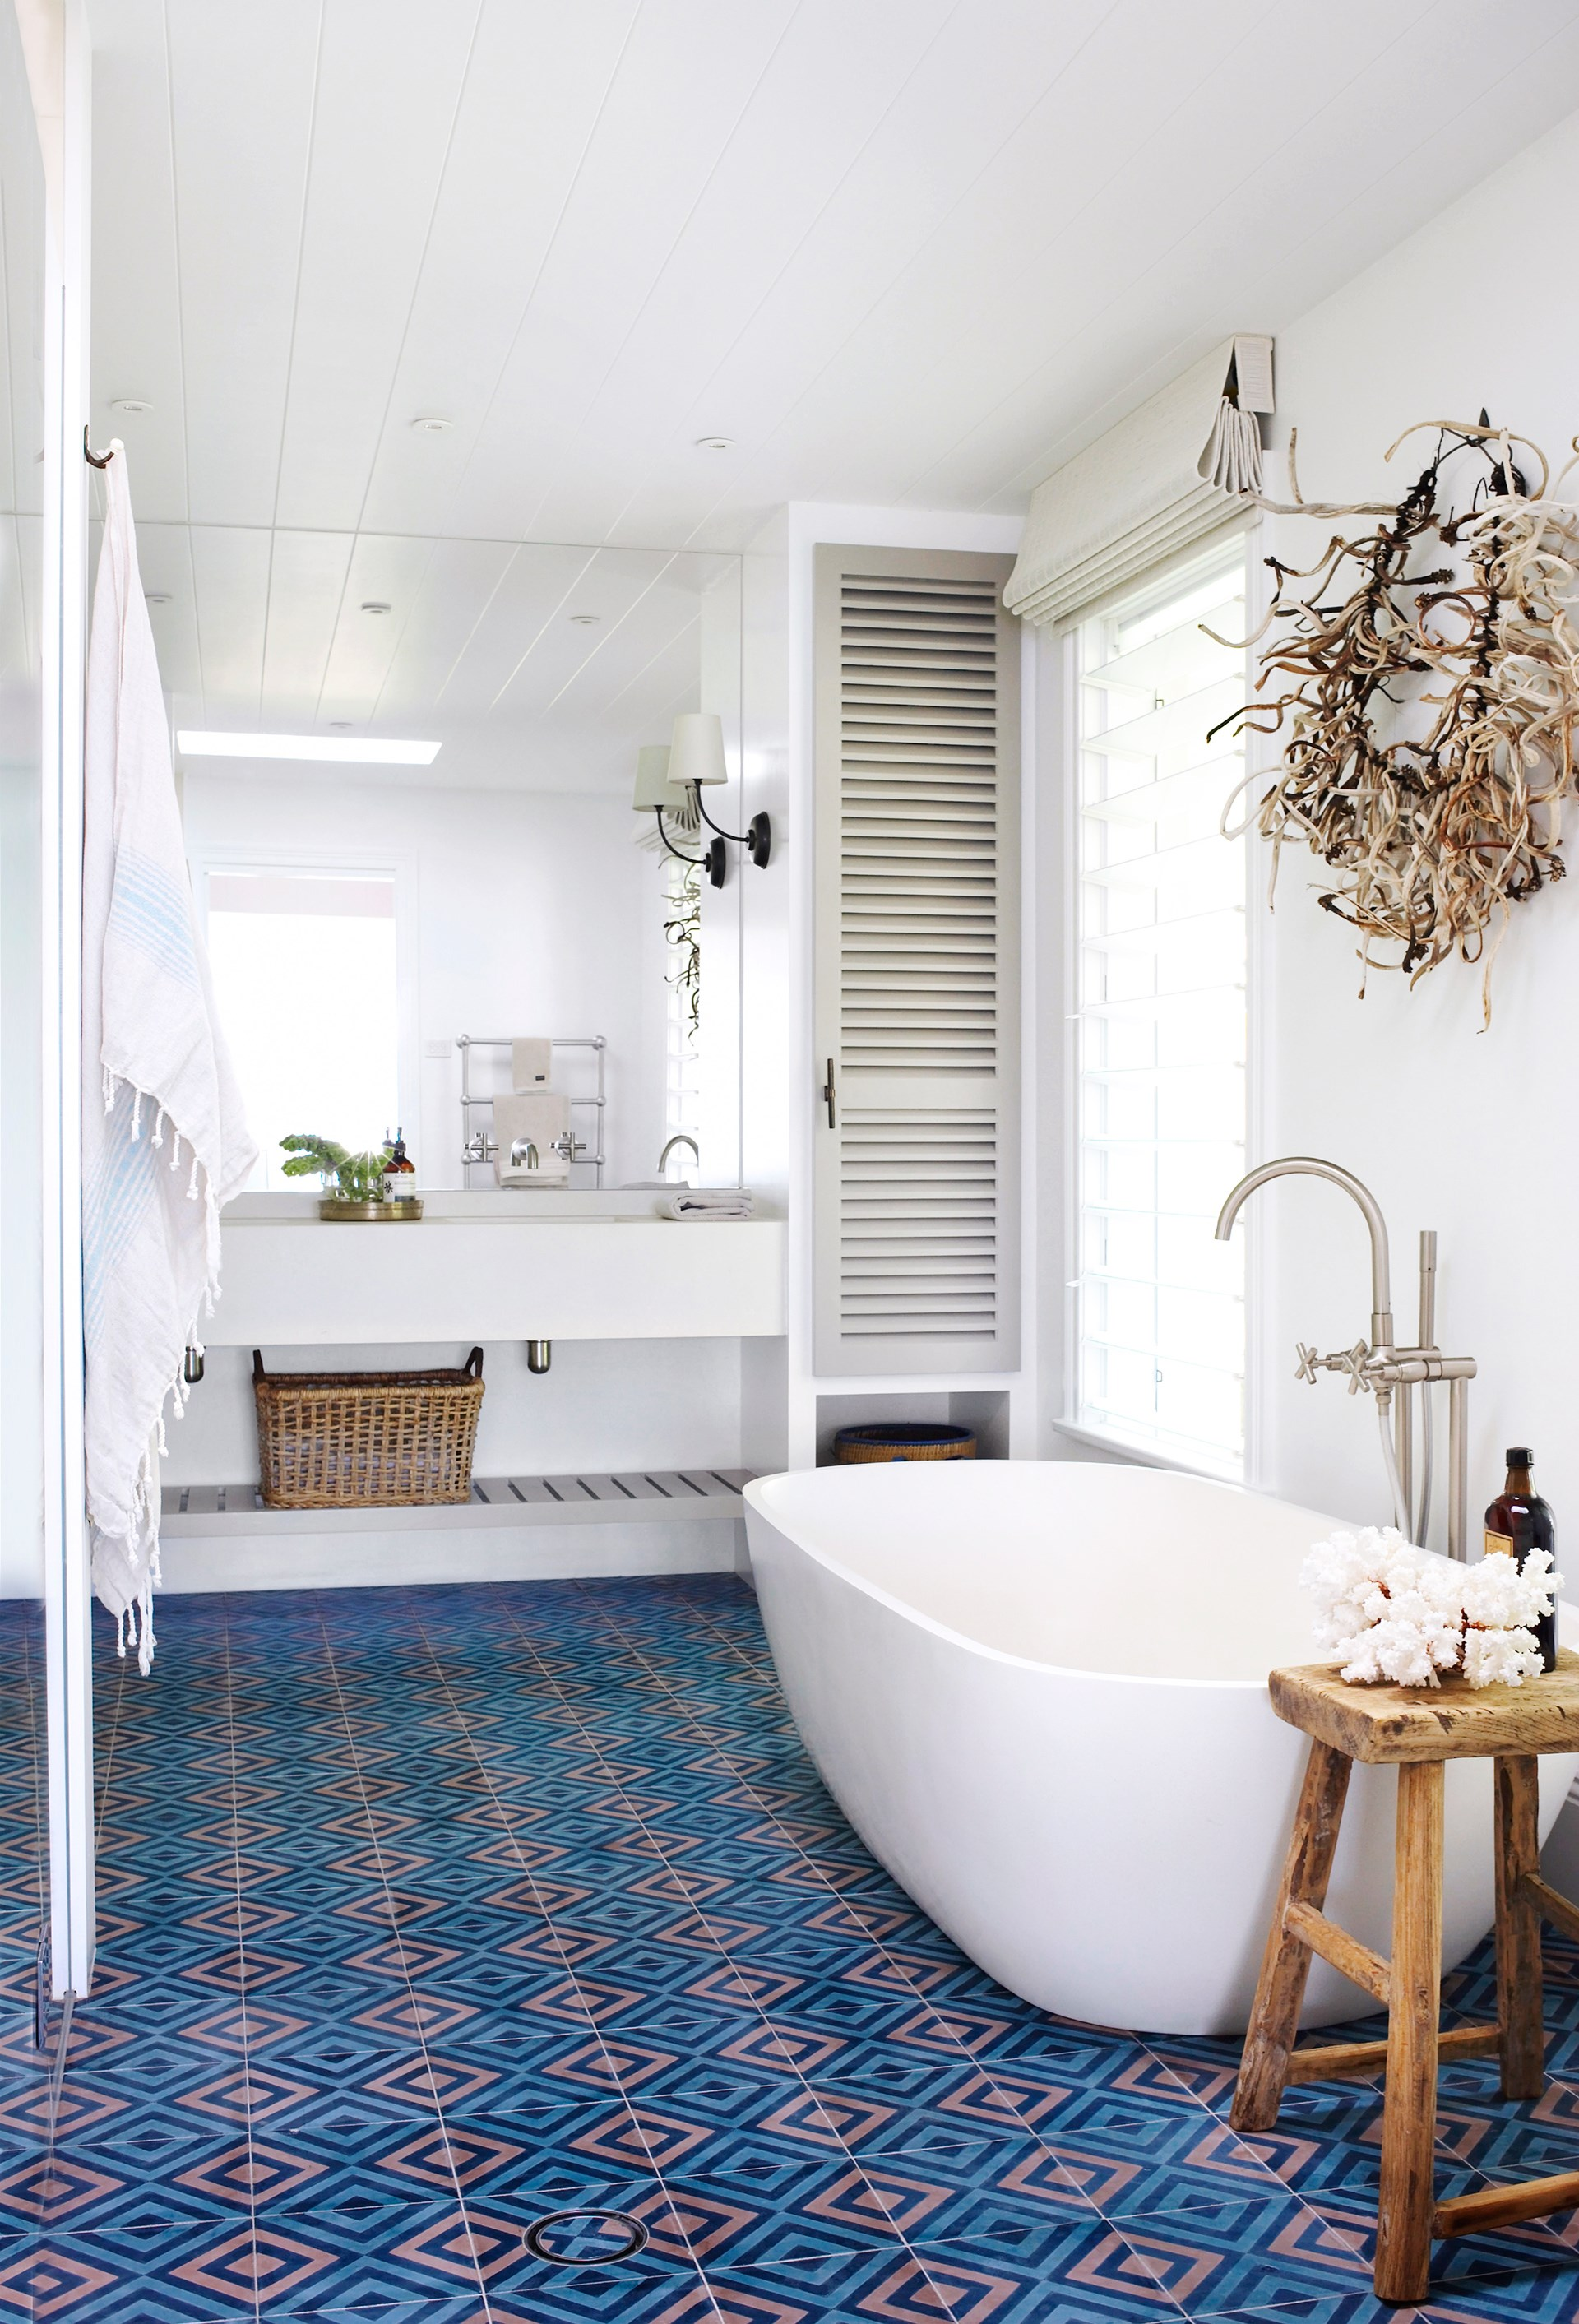 """A luxurious oversized bath is great for long soaks and the perfect fit for this [holiday home](http://www.homestolove.com.au/a-luxury-coastal-home-on-sydneys-northern-beaches-1808